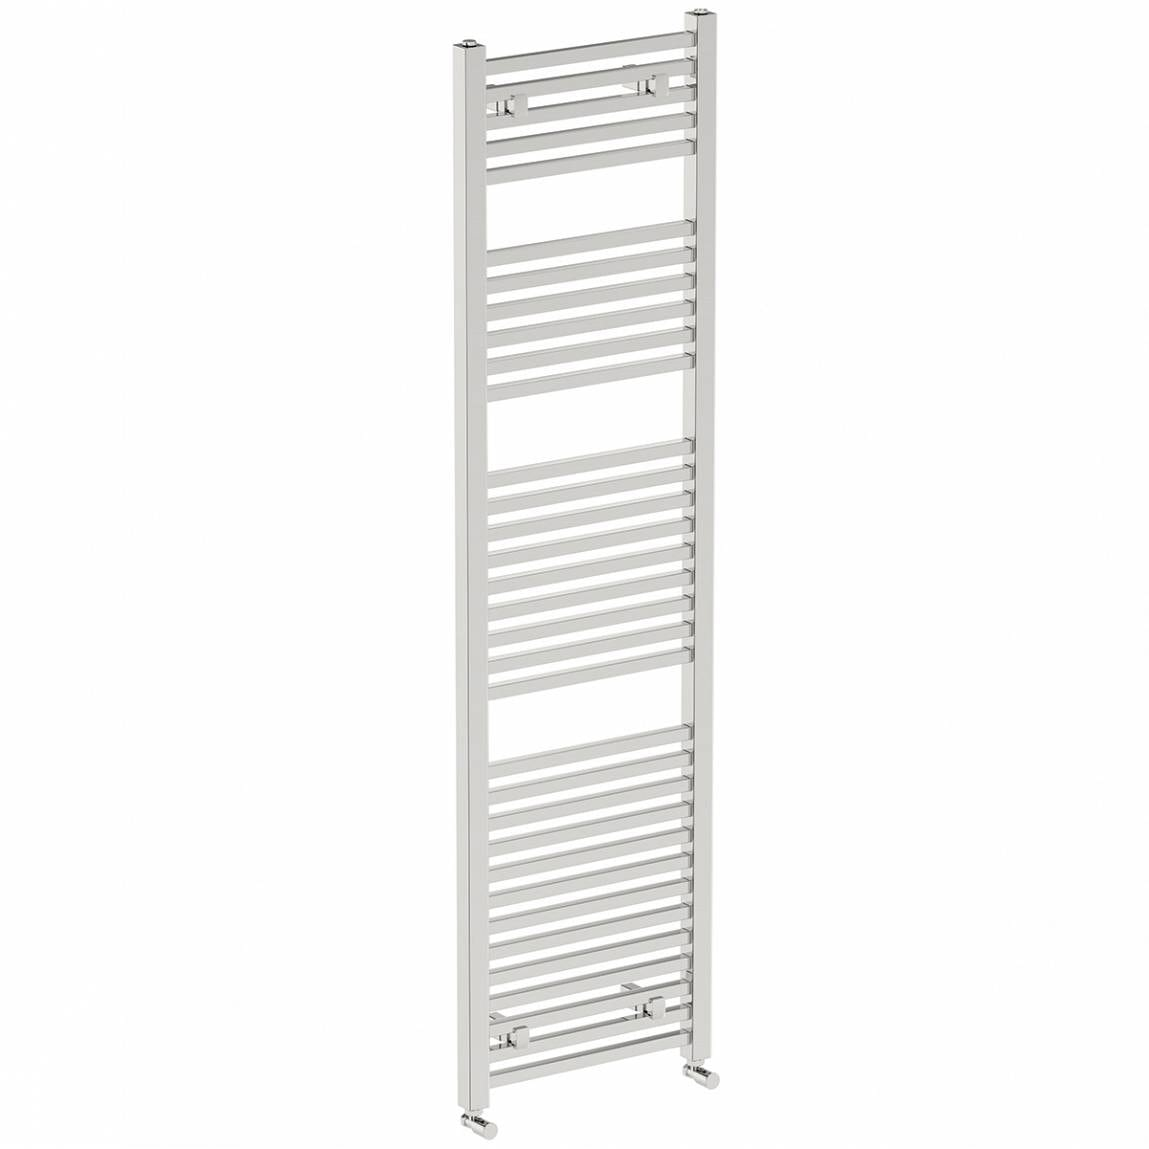 Orchard Wye heated towel rail 1800 x 490 offer pack